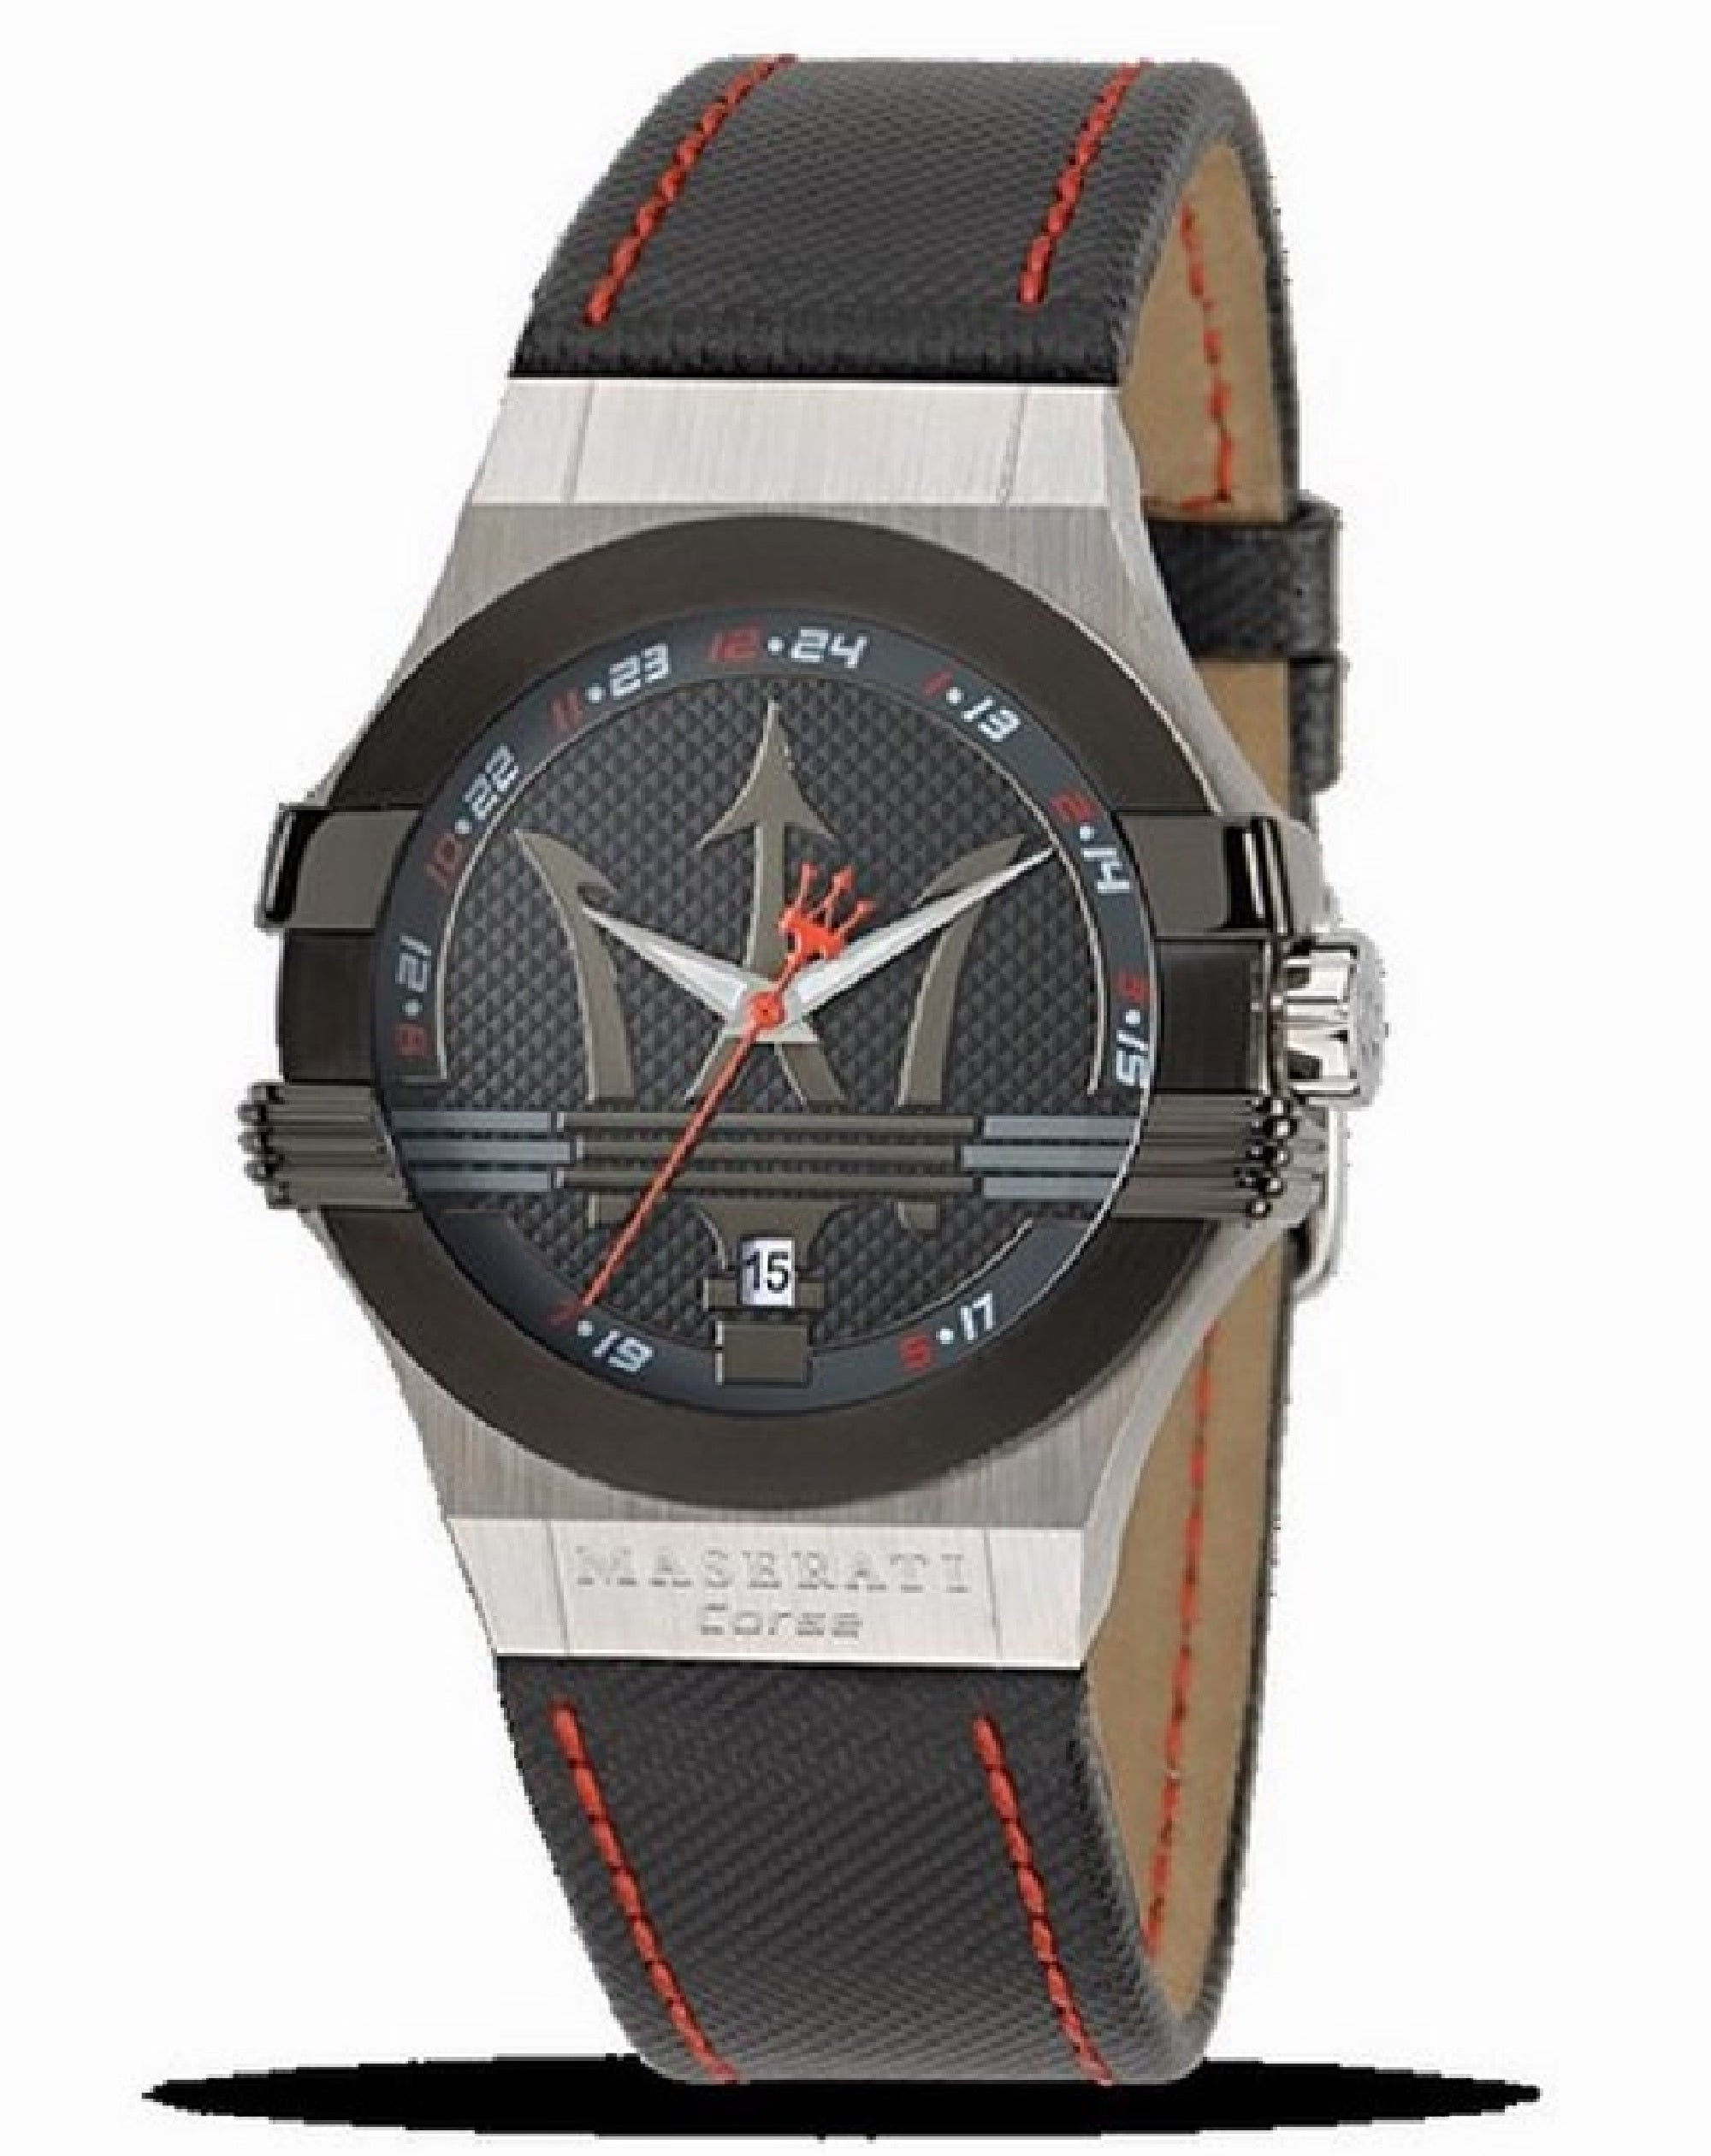 Potenza Blue Leather Watch, R8851108001